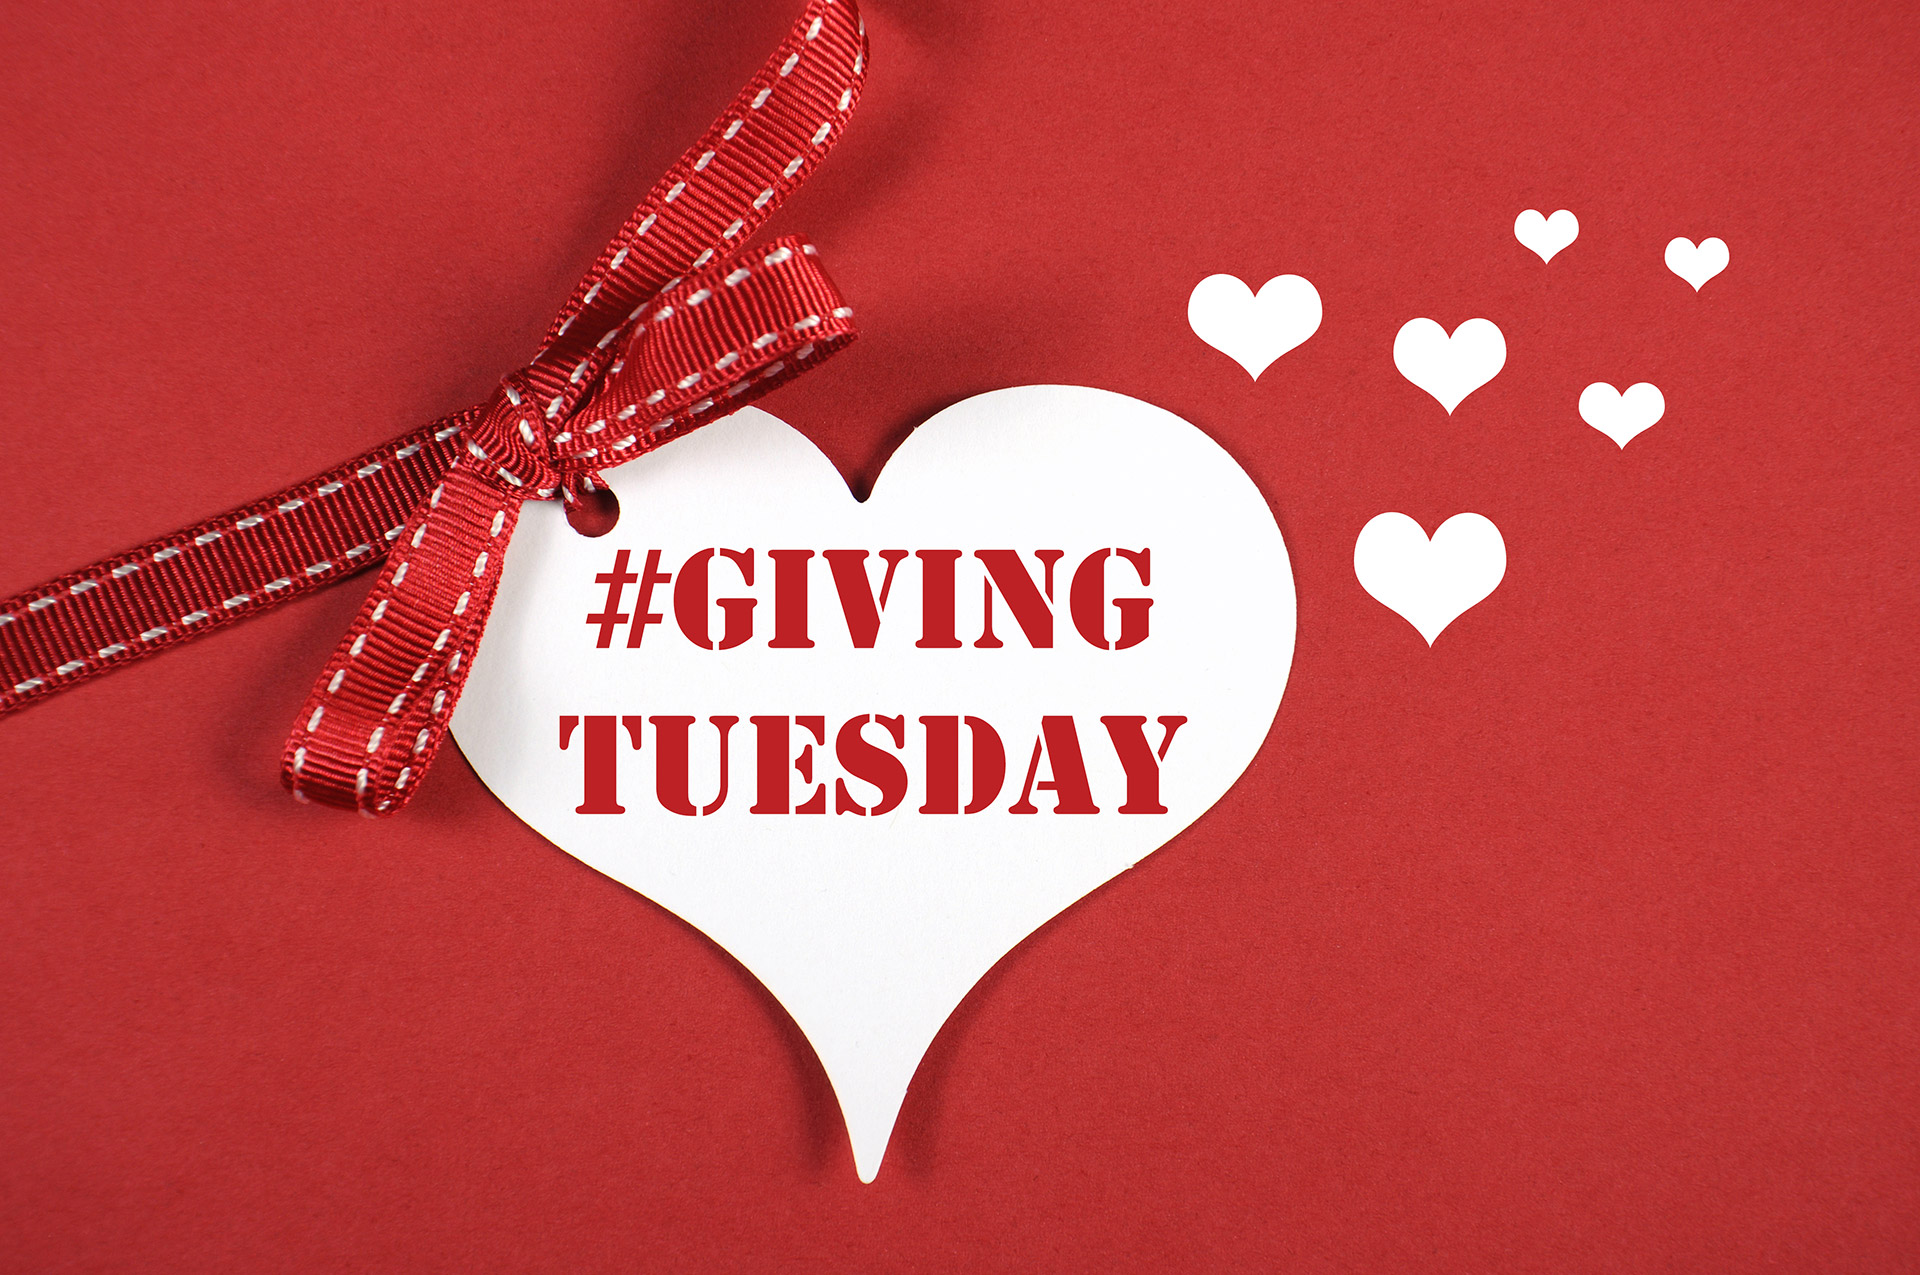 #GivingSmarter for #GivingTuesday